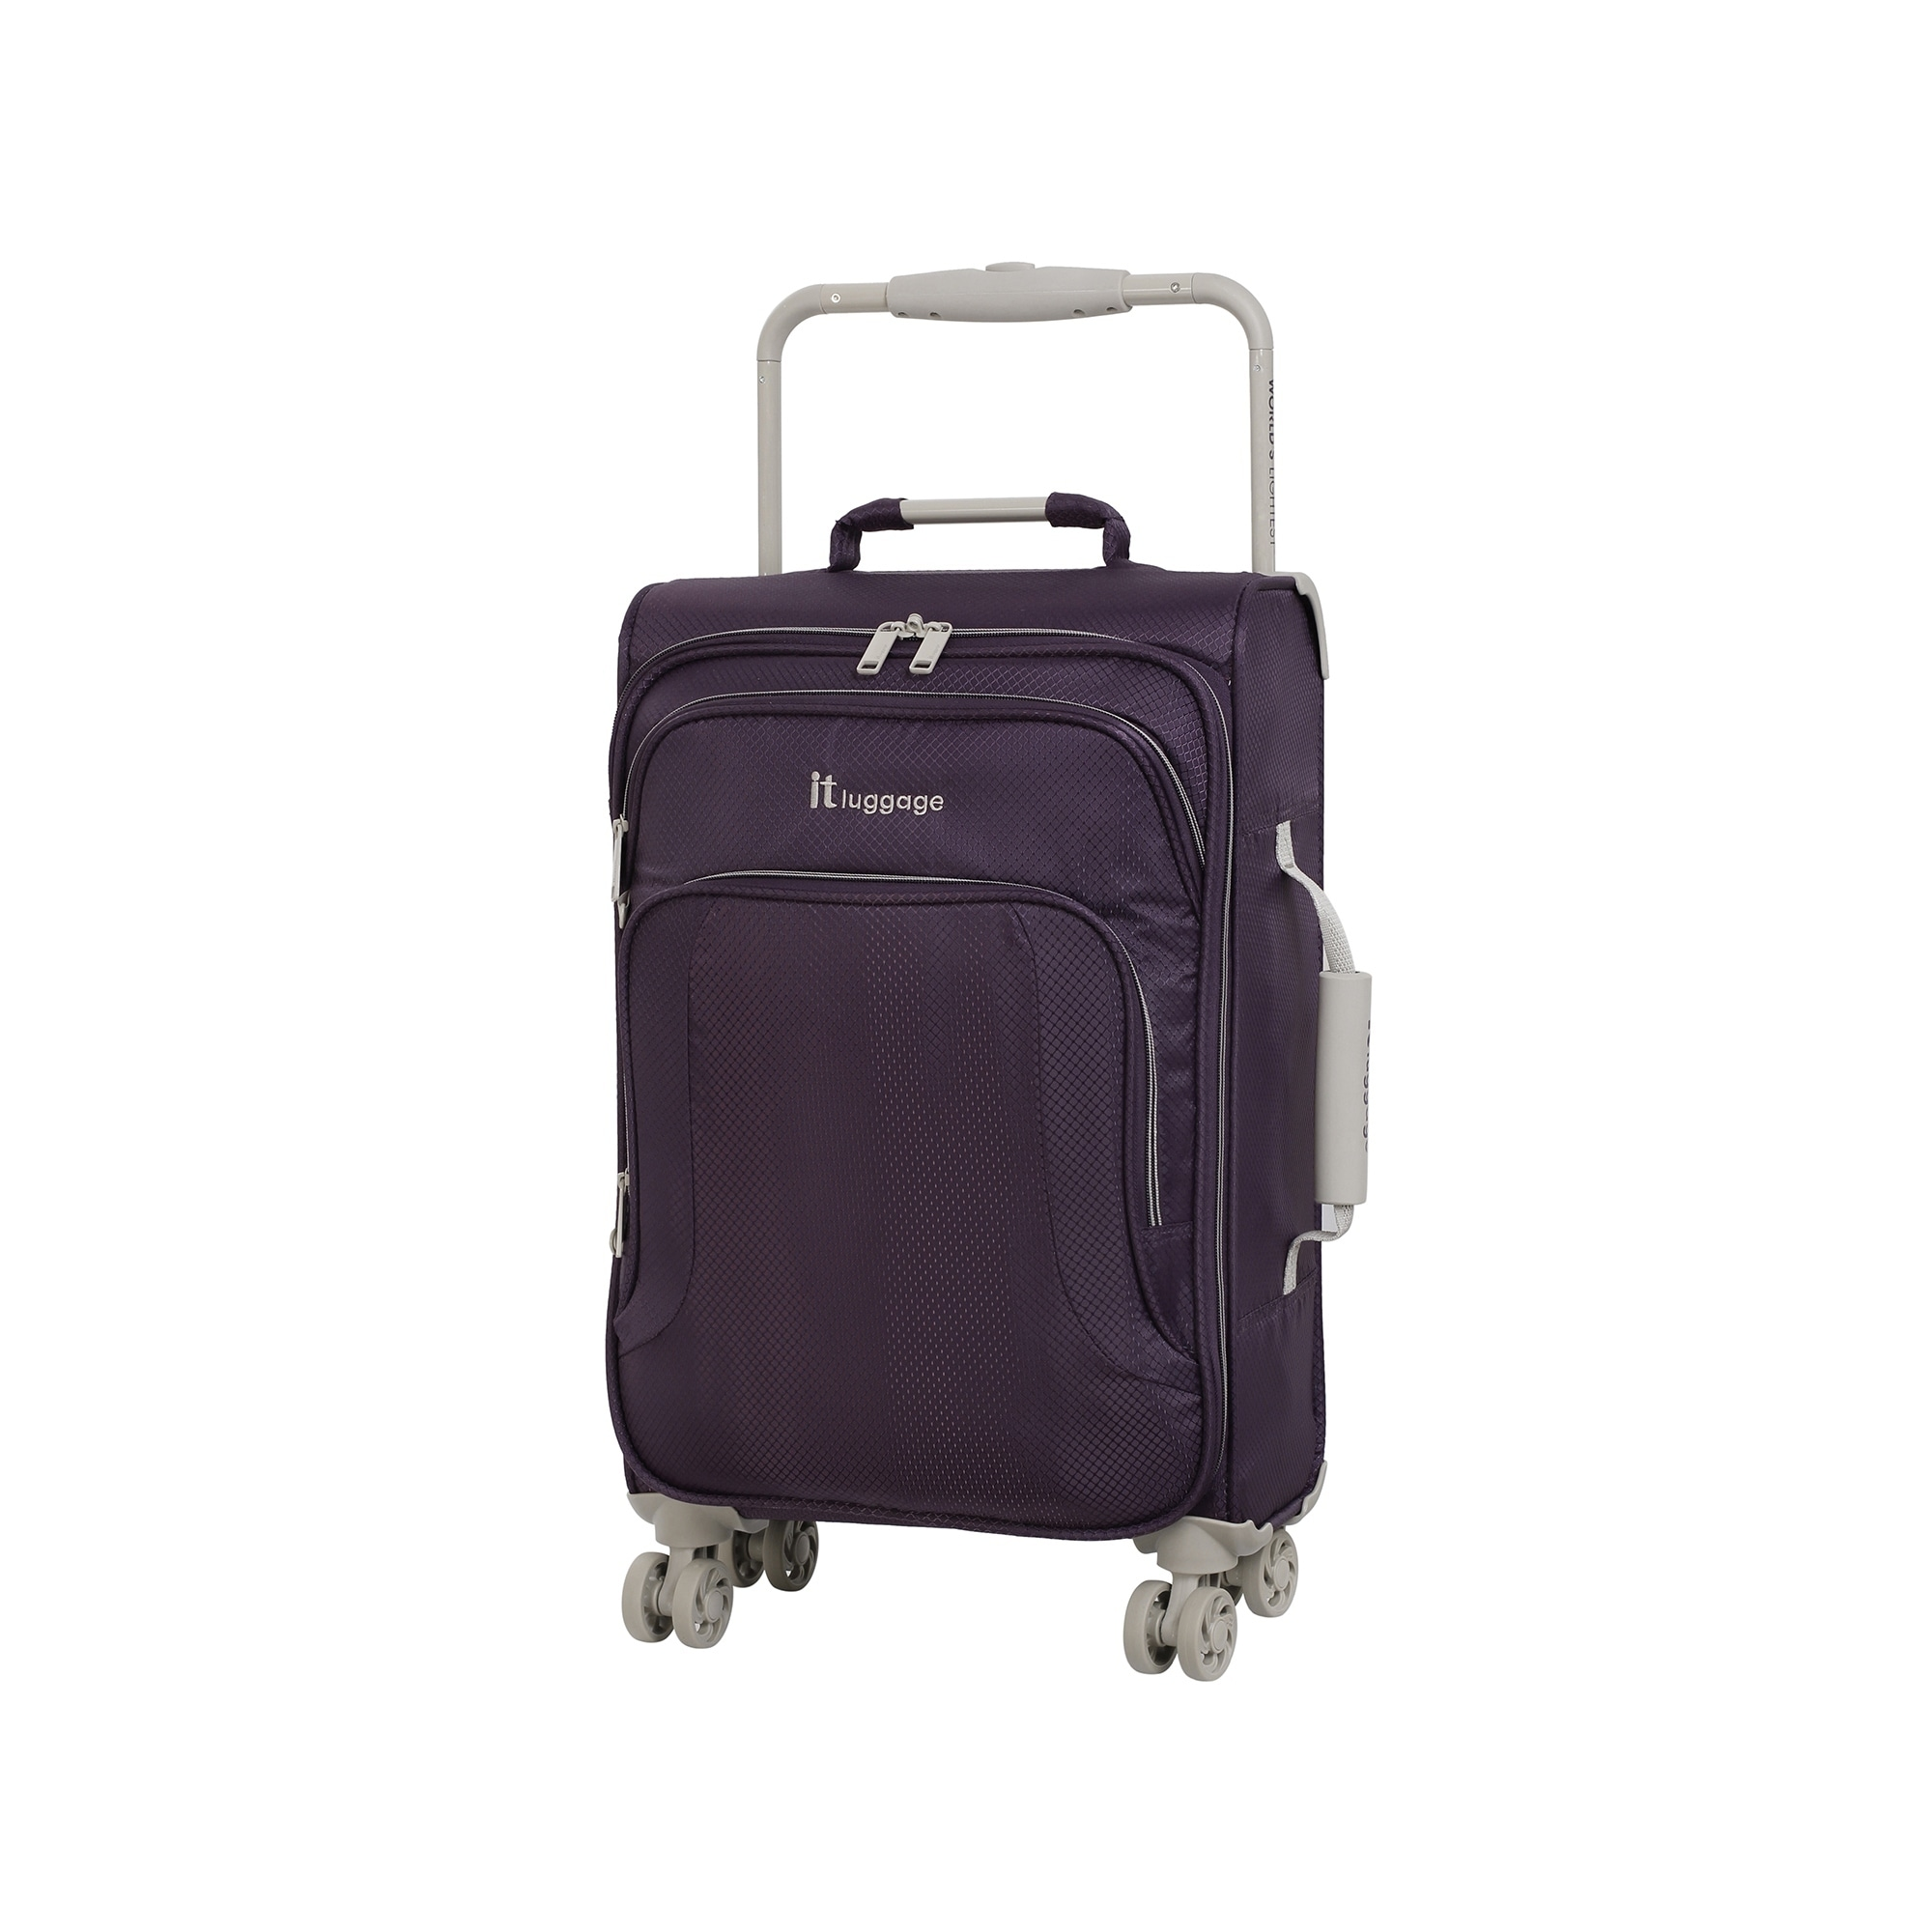 2a1f8fa909f4 it luggage World's Lightest® 22-inch Lightweight Carry On Spinner Suitcase